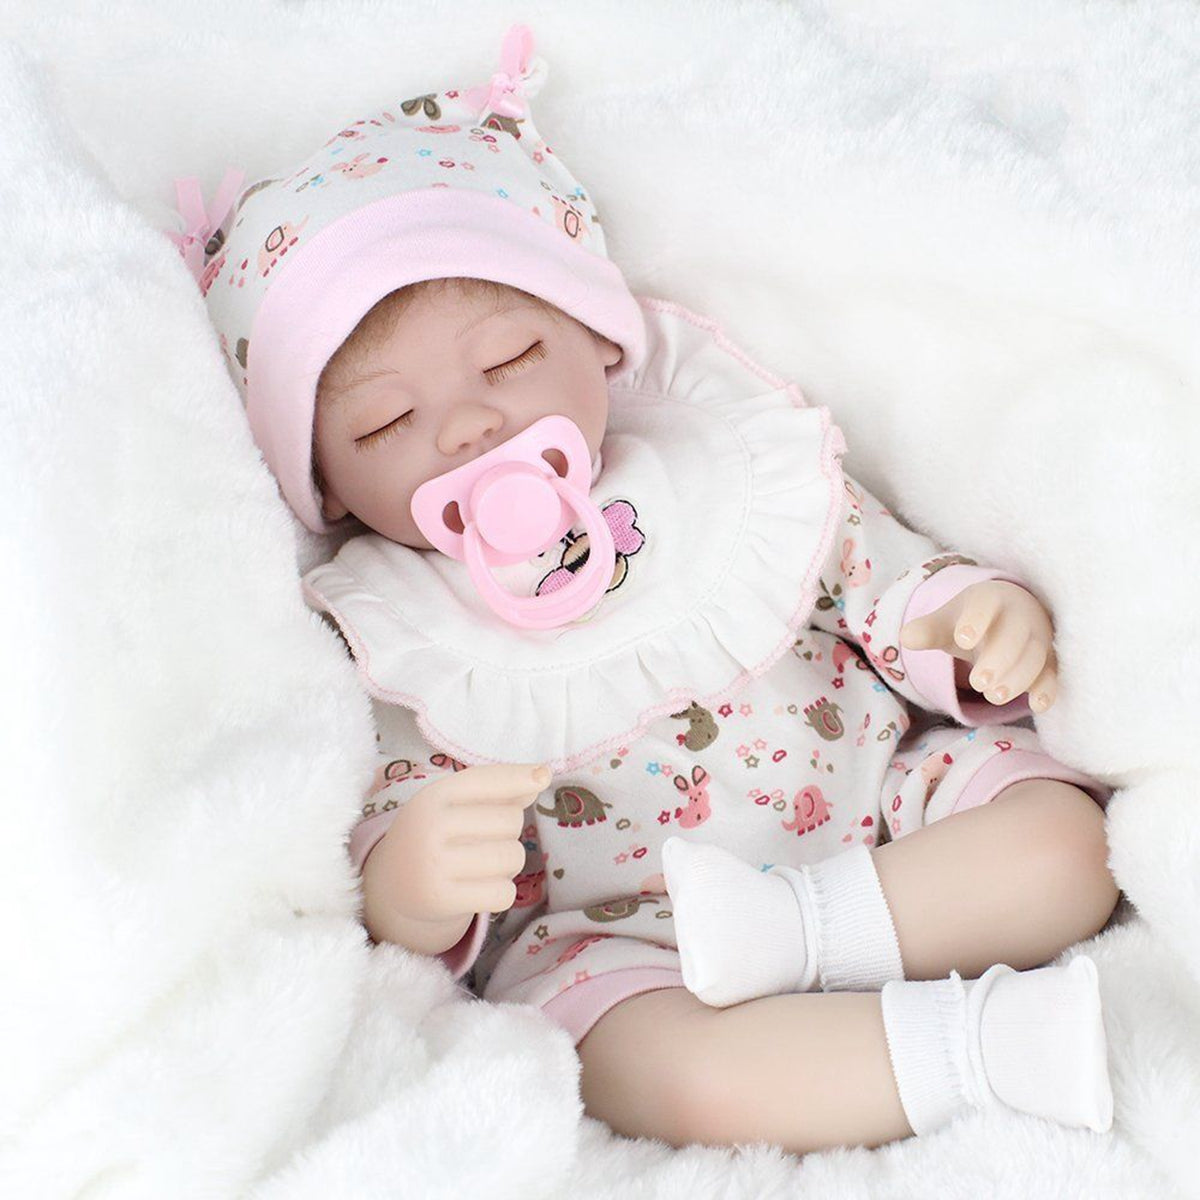 NPK 16 Inch 41cm Reborn Baby Realistic Soft Silicone Doll Handmade Lifelike Baby Girl Dolls Play House Toys Birthday Gift